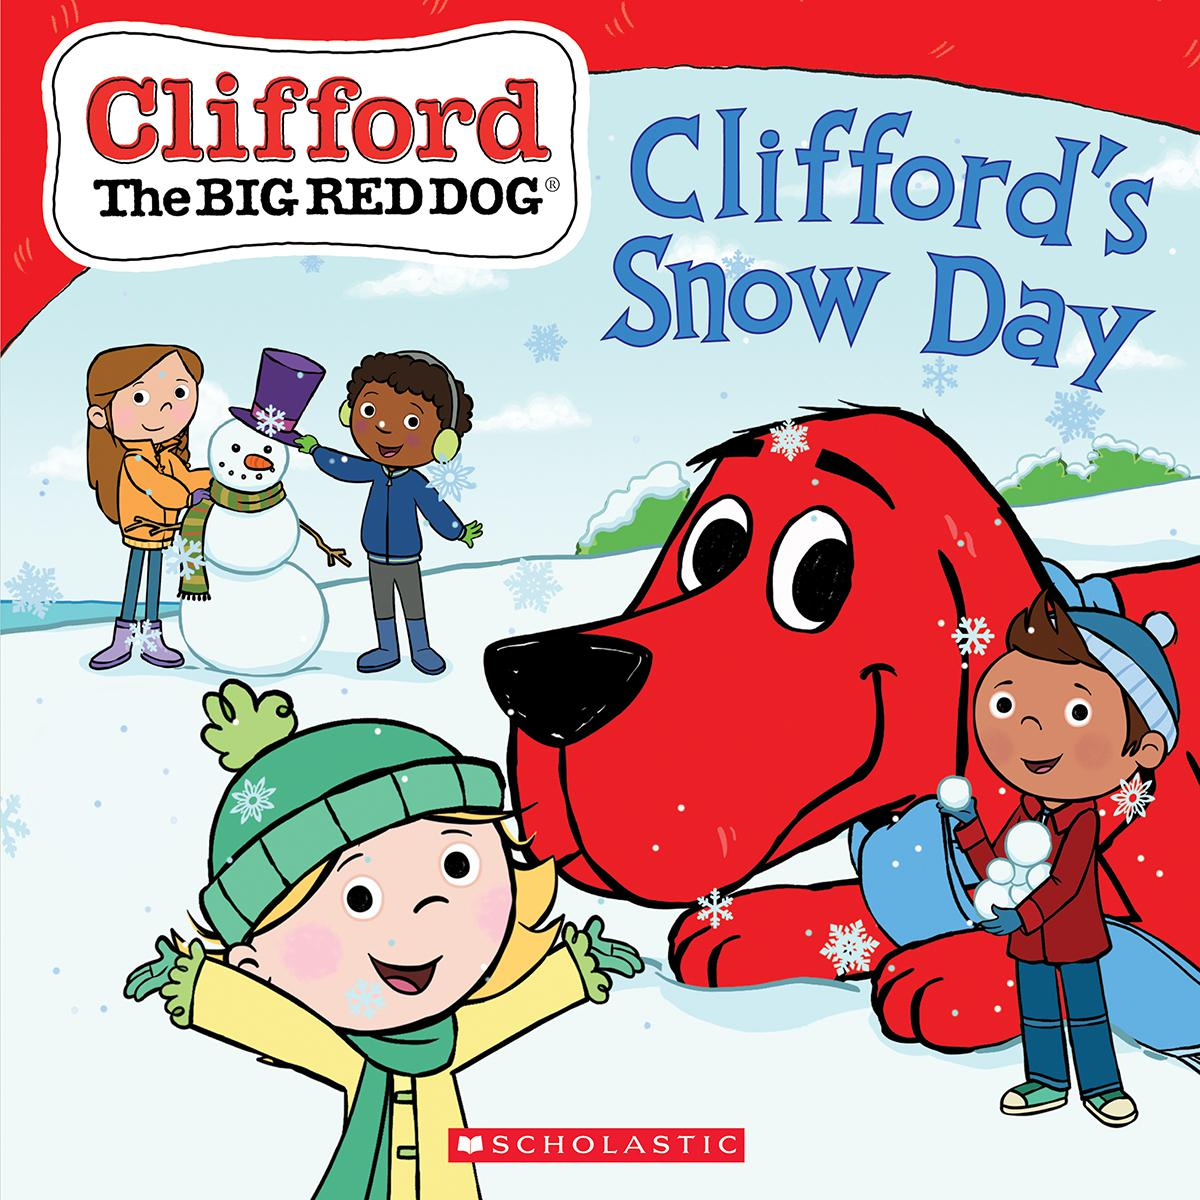 Clifford the Big Red Dog®: Clifford's Snow Day